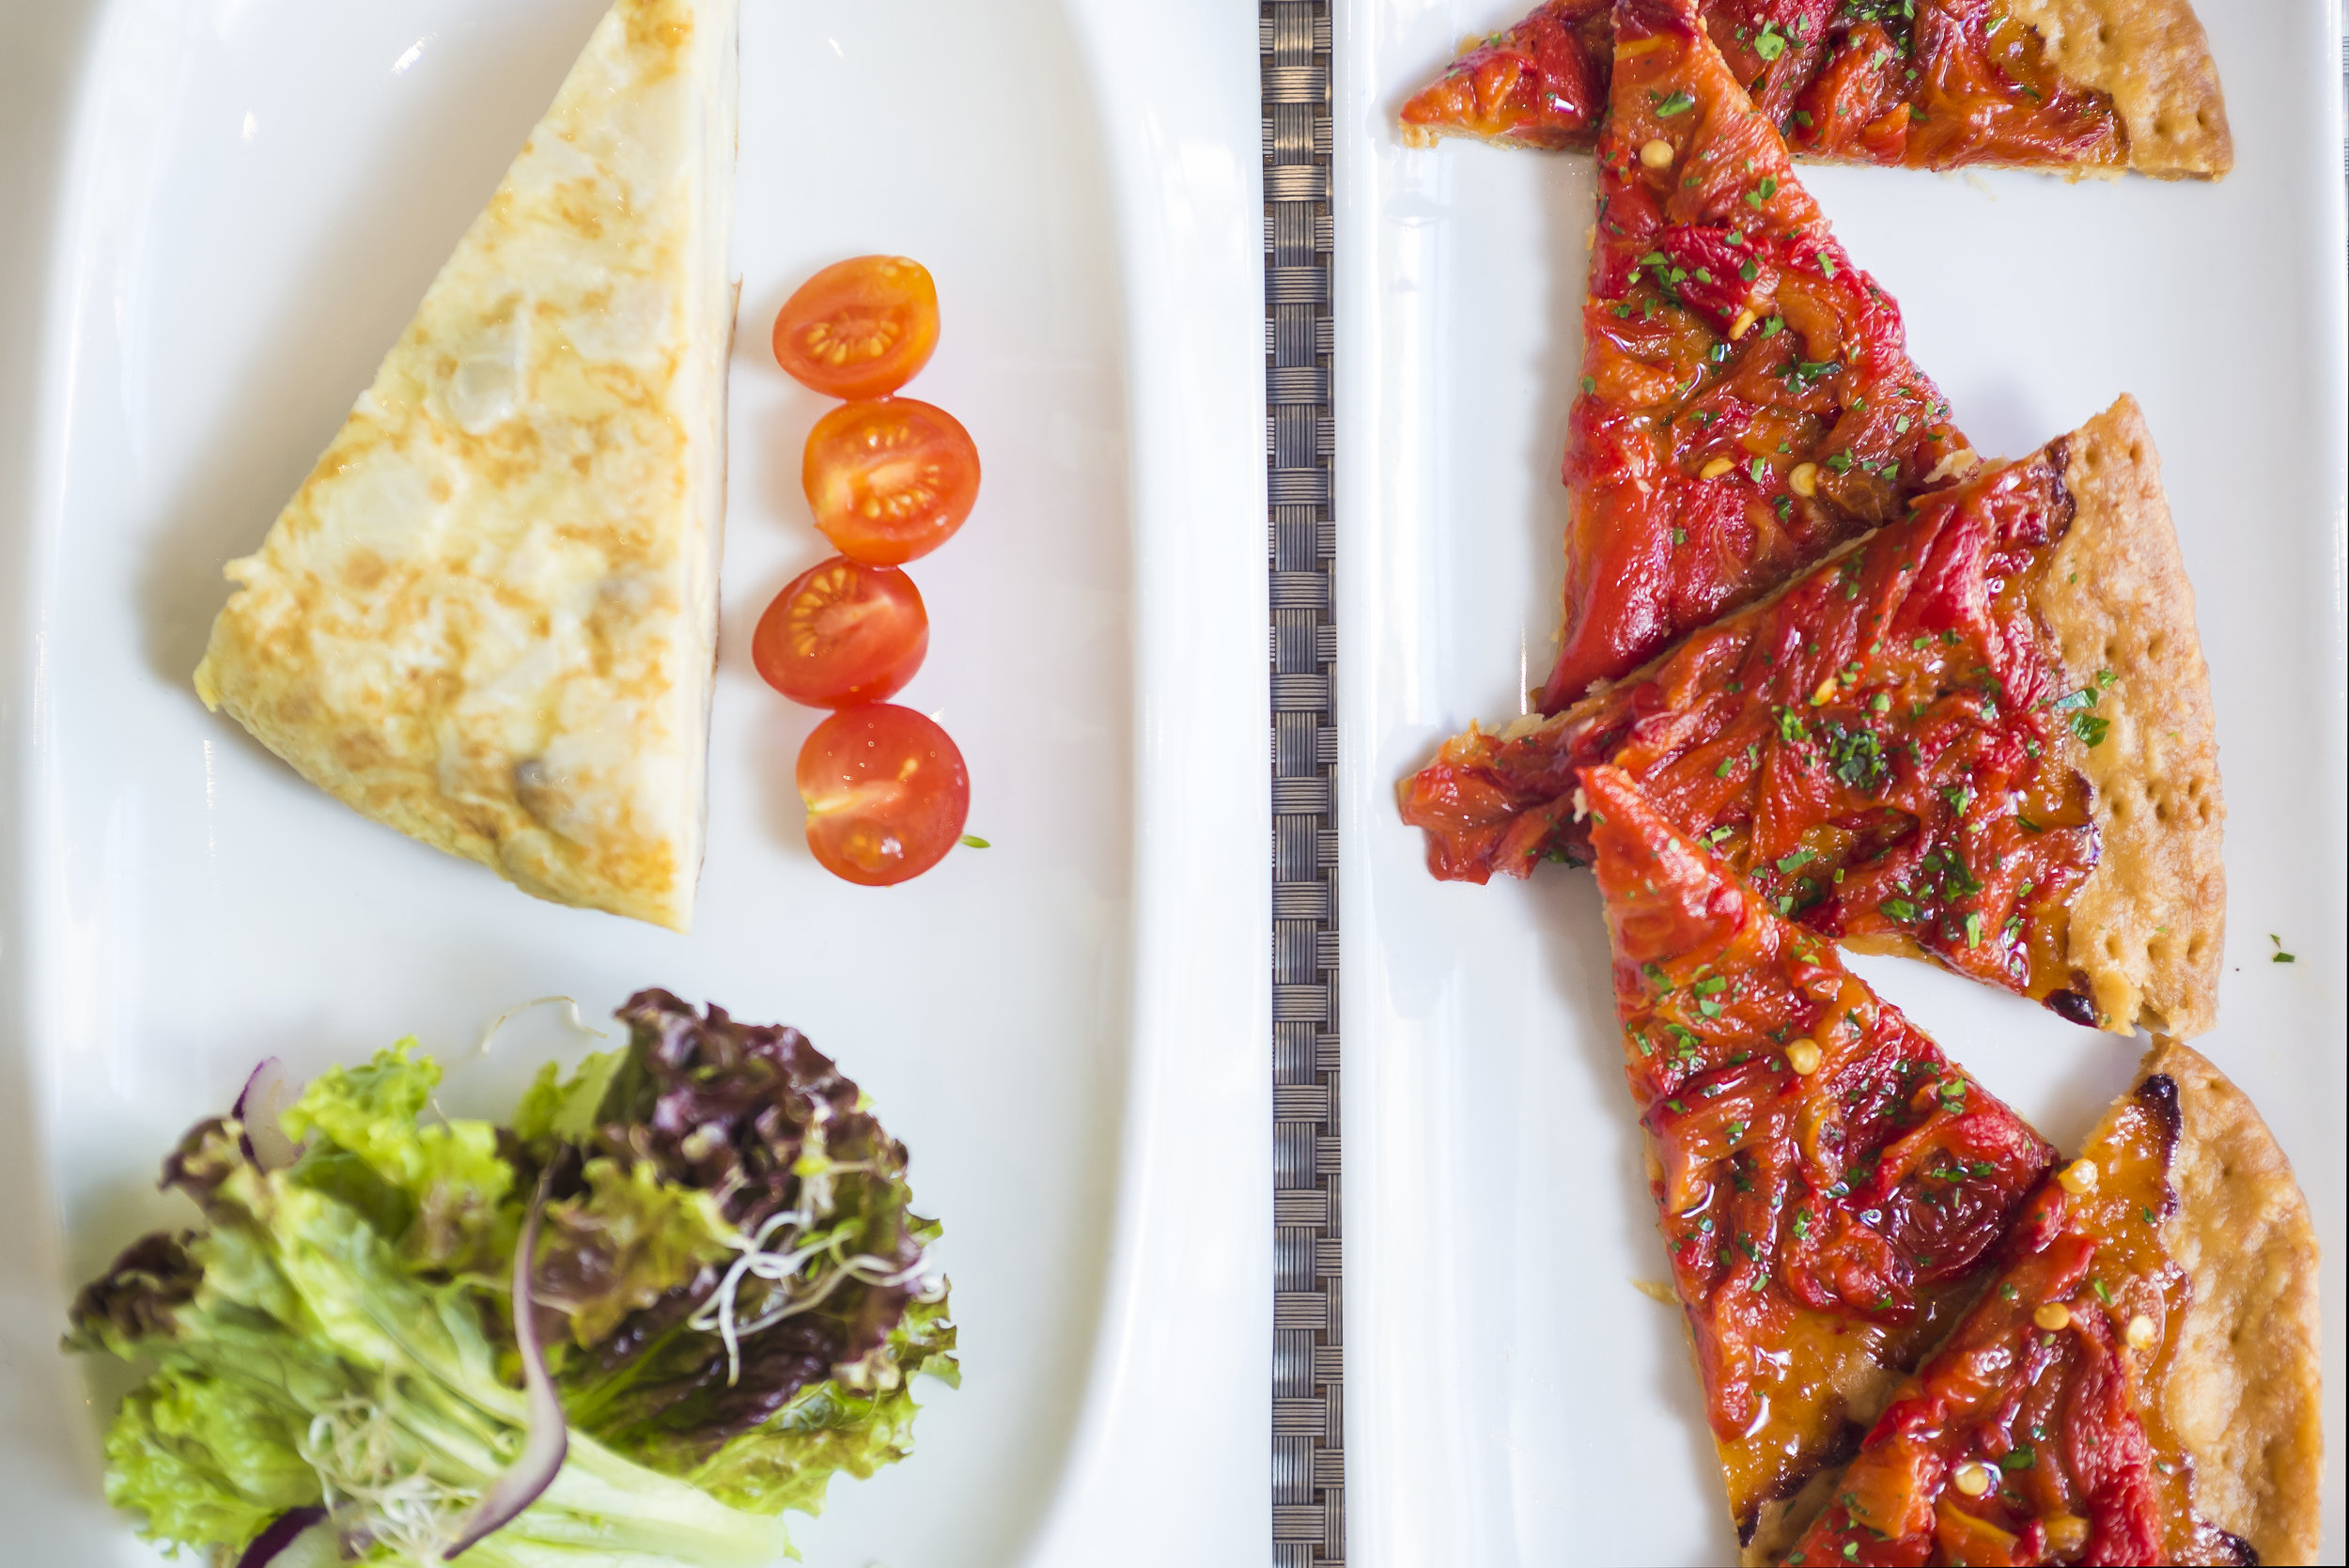 Dining & Culinary - Careyes has plenty of dining options aside from in house meals that will suit a variety of preferences.Italian, Mediterranean, Traditional Mexican and Oriental inspired restaurants are all located within Careyes.